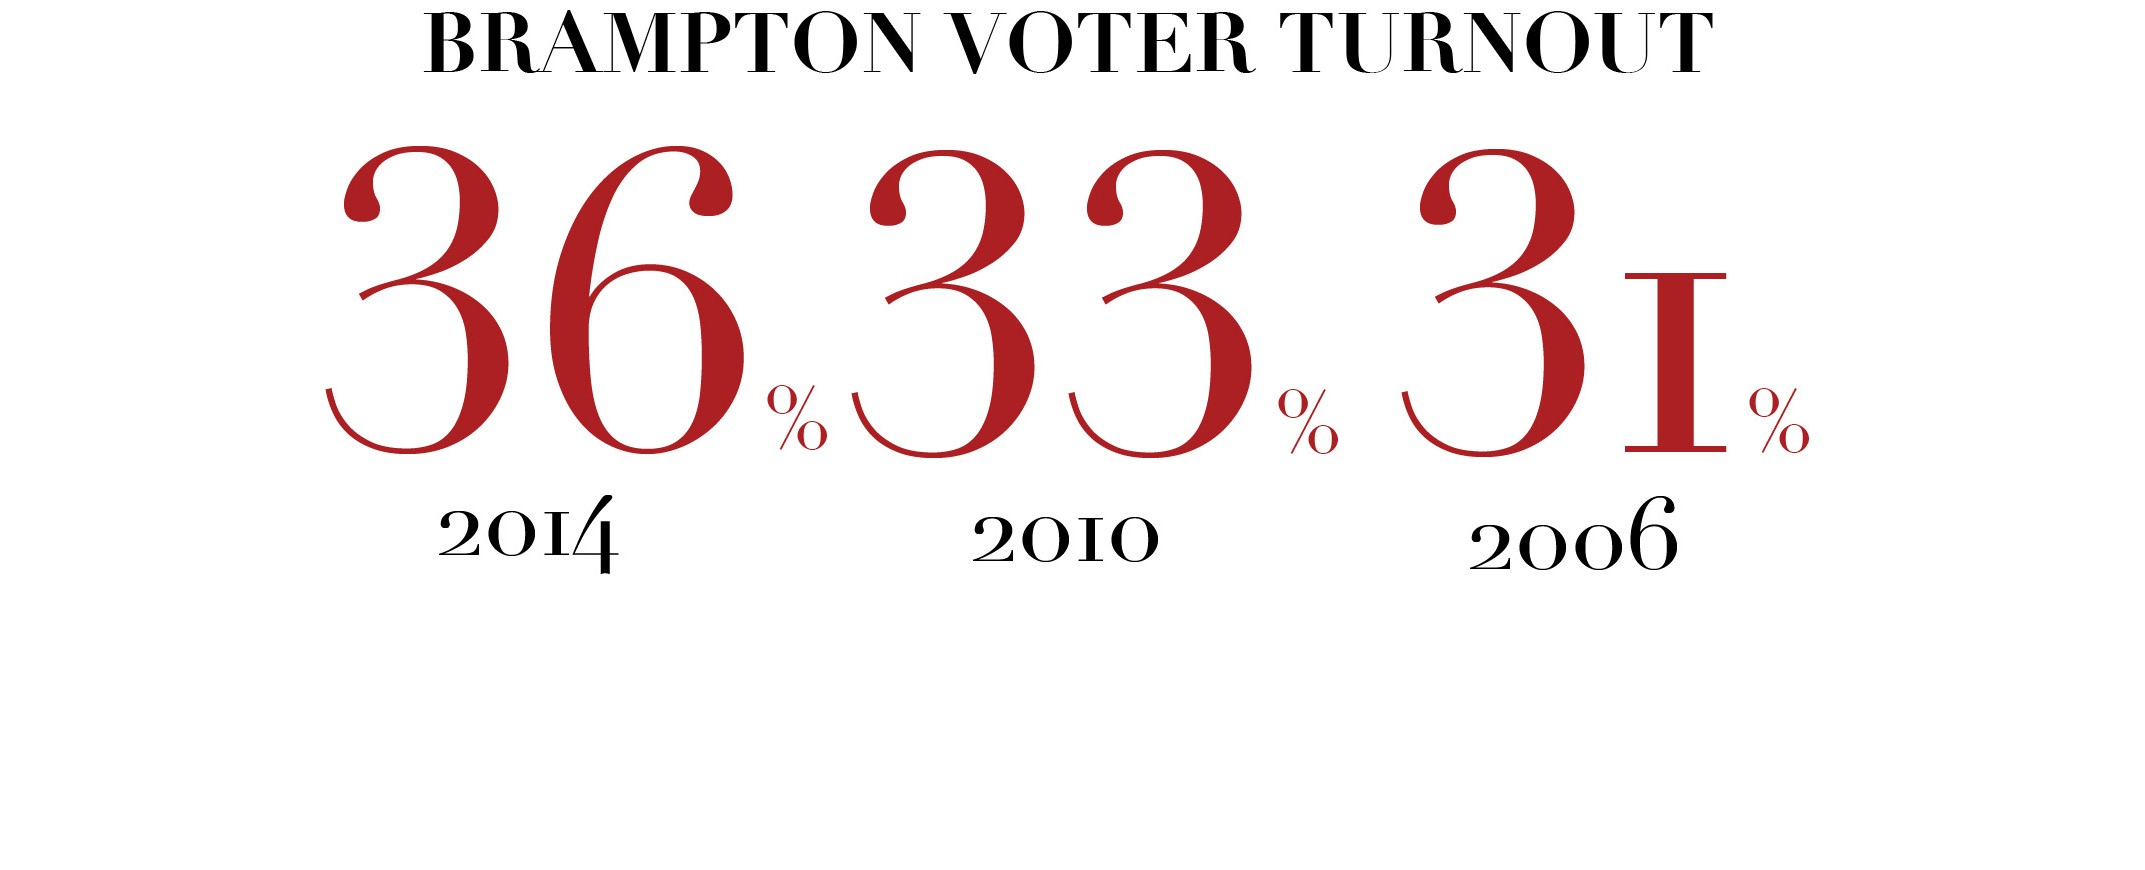 Don't call it democracy if people won't vote. Brampton needs to decide on its future